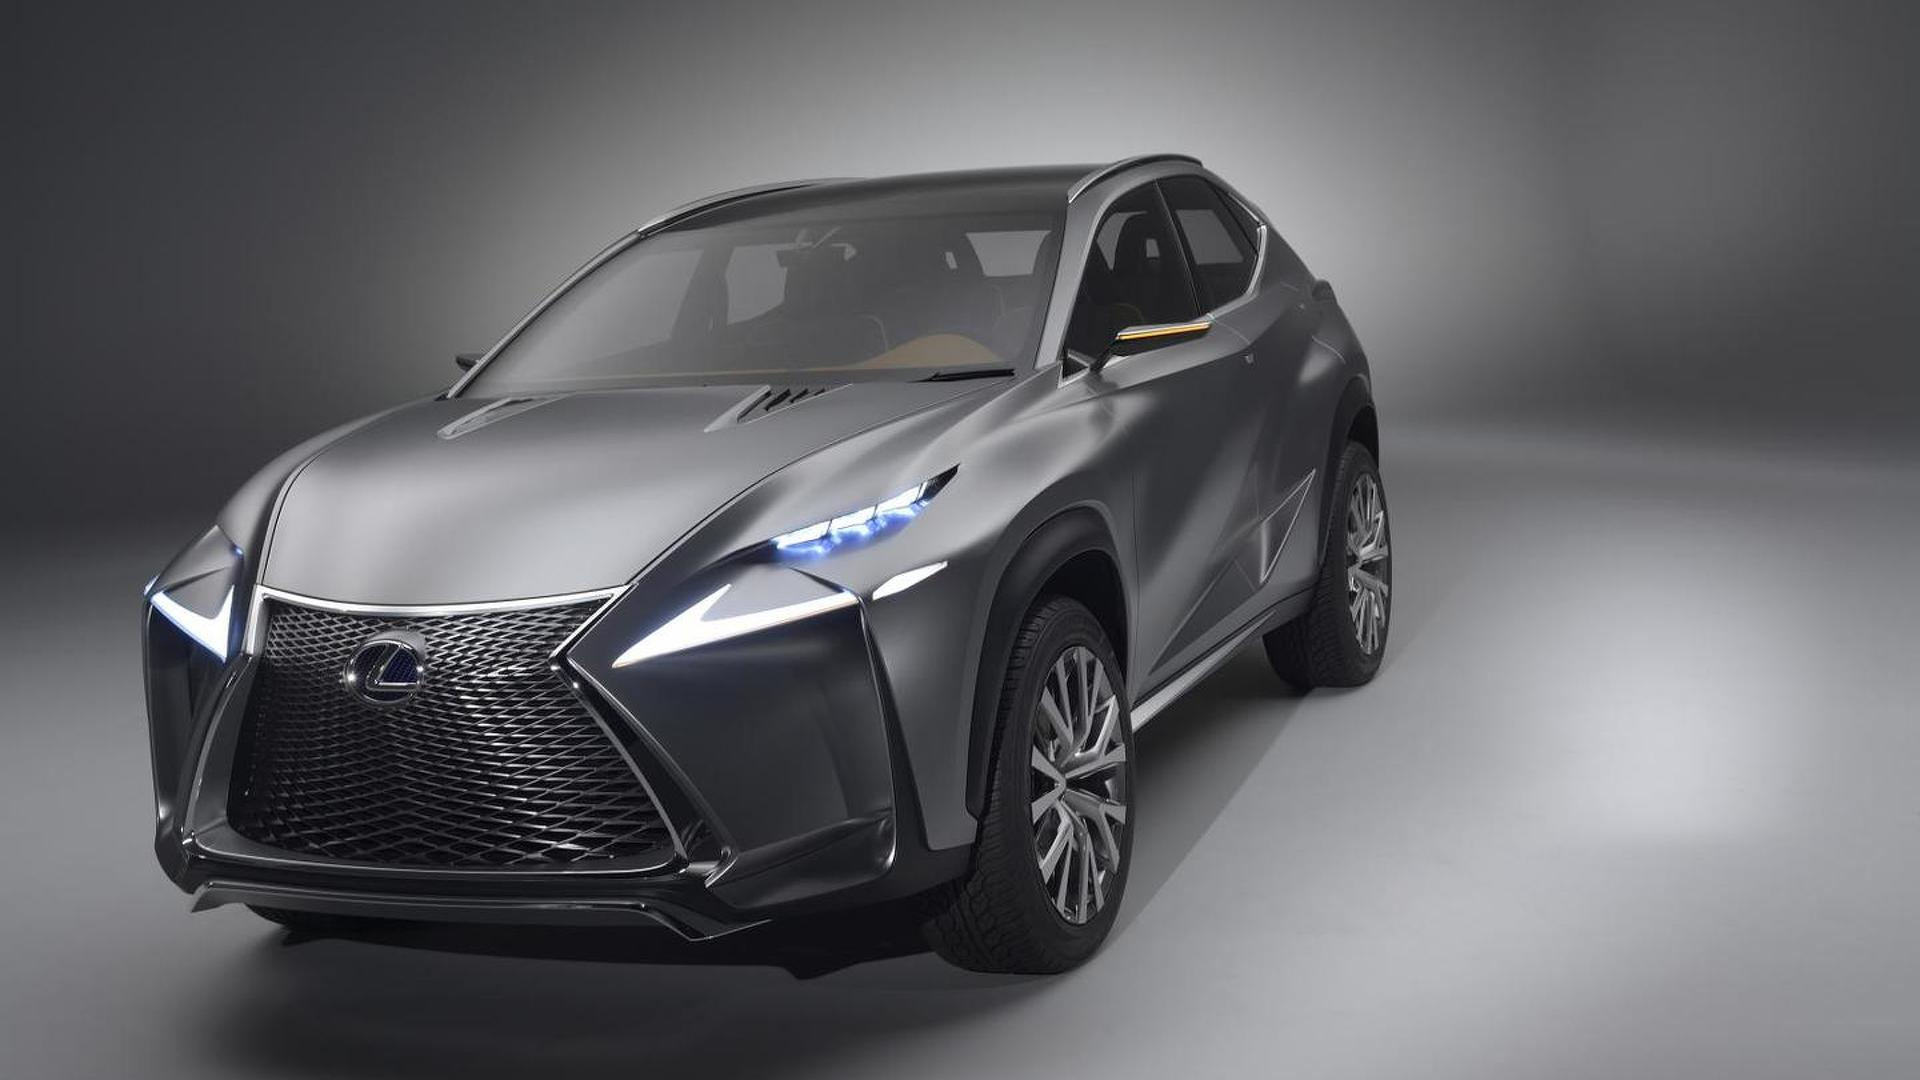 https://icdn-3.motor1.com/images/mgl/7vl0A/s1/2013-410123-lexus-lf-nx-mid-size-crossover-concept1.jpg